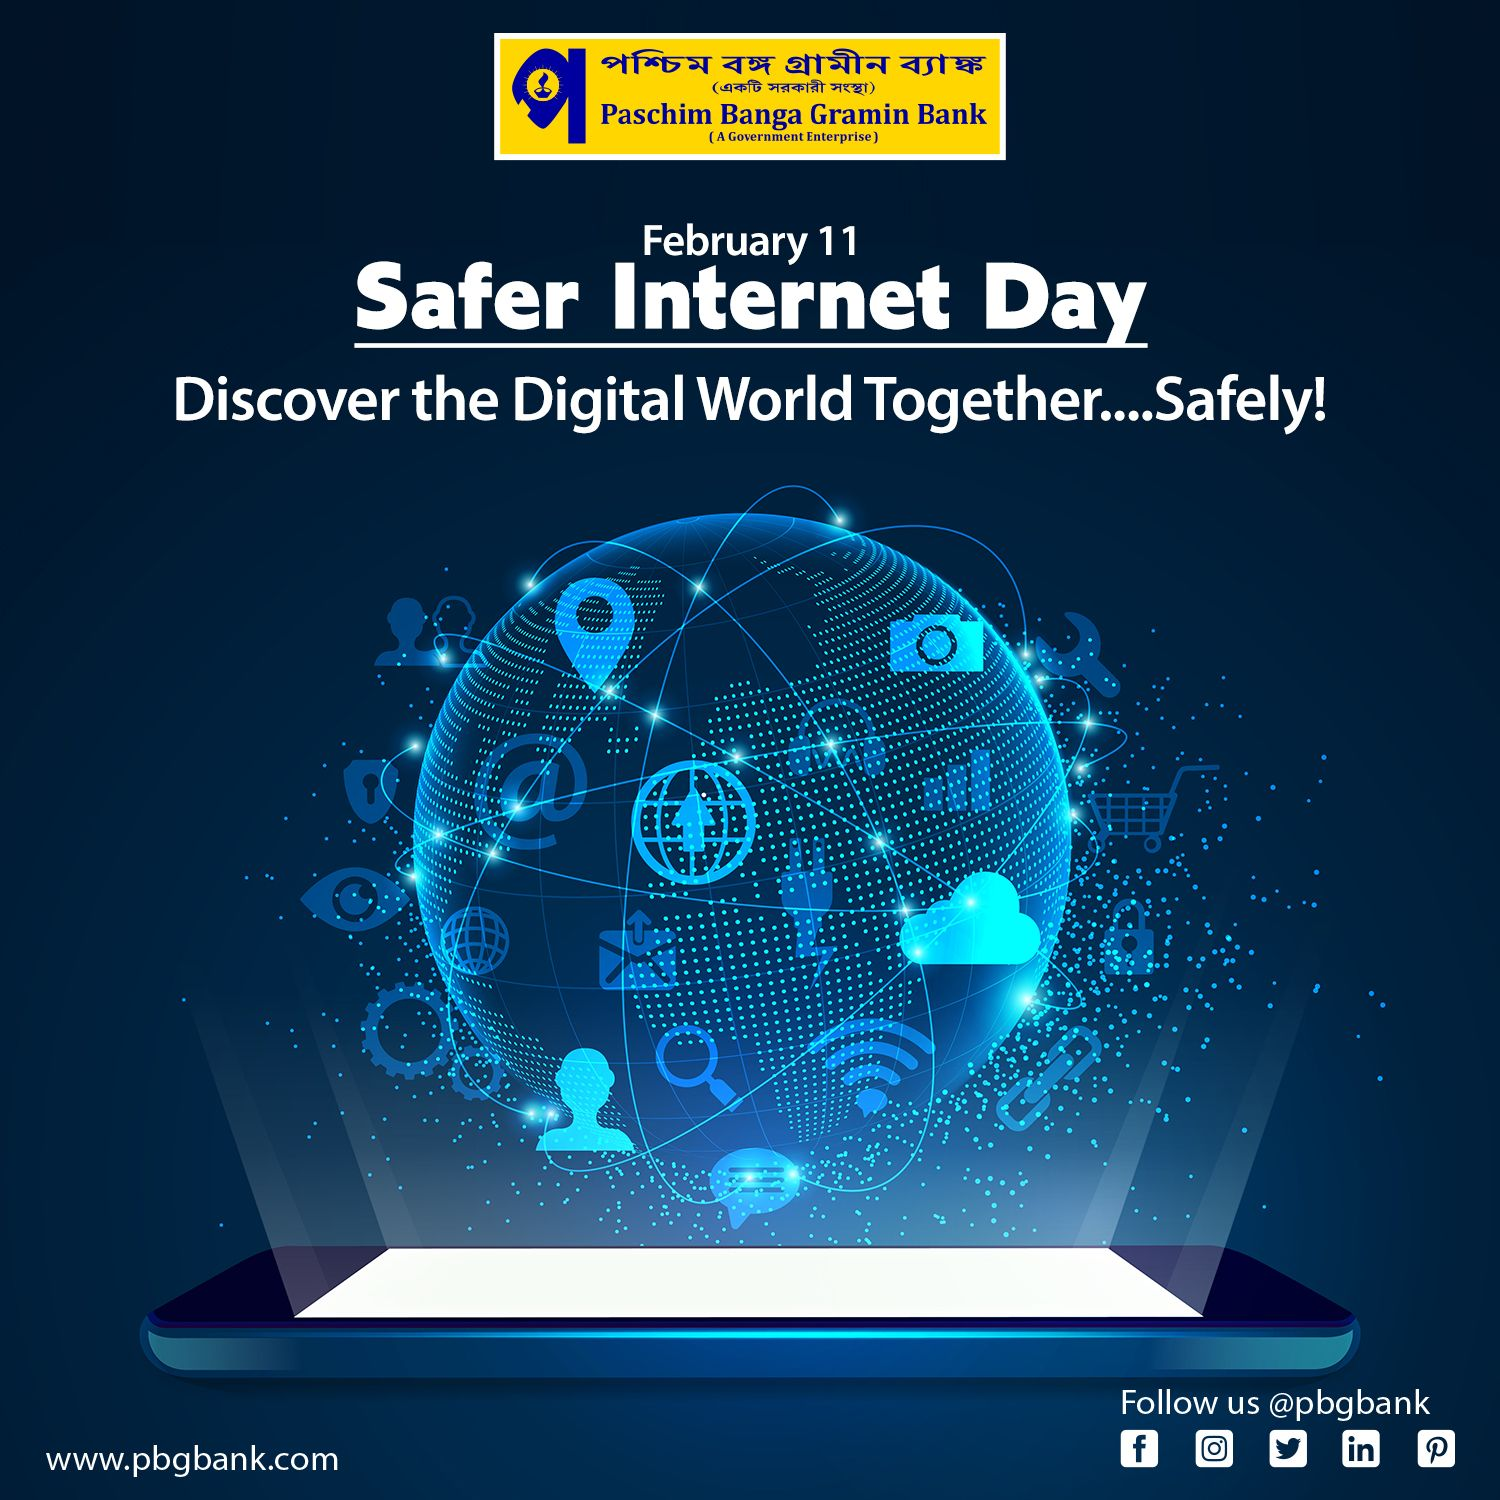 Discover The Digital World Together Safely Paschimbangagraminbank Pbgb Saferinternetday Safety Westbengal In 2020